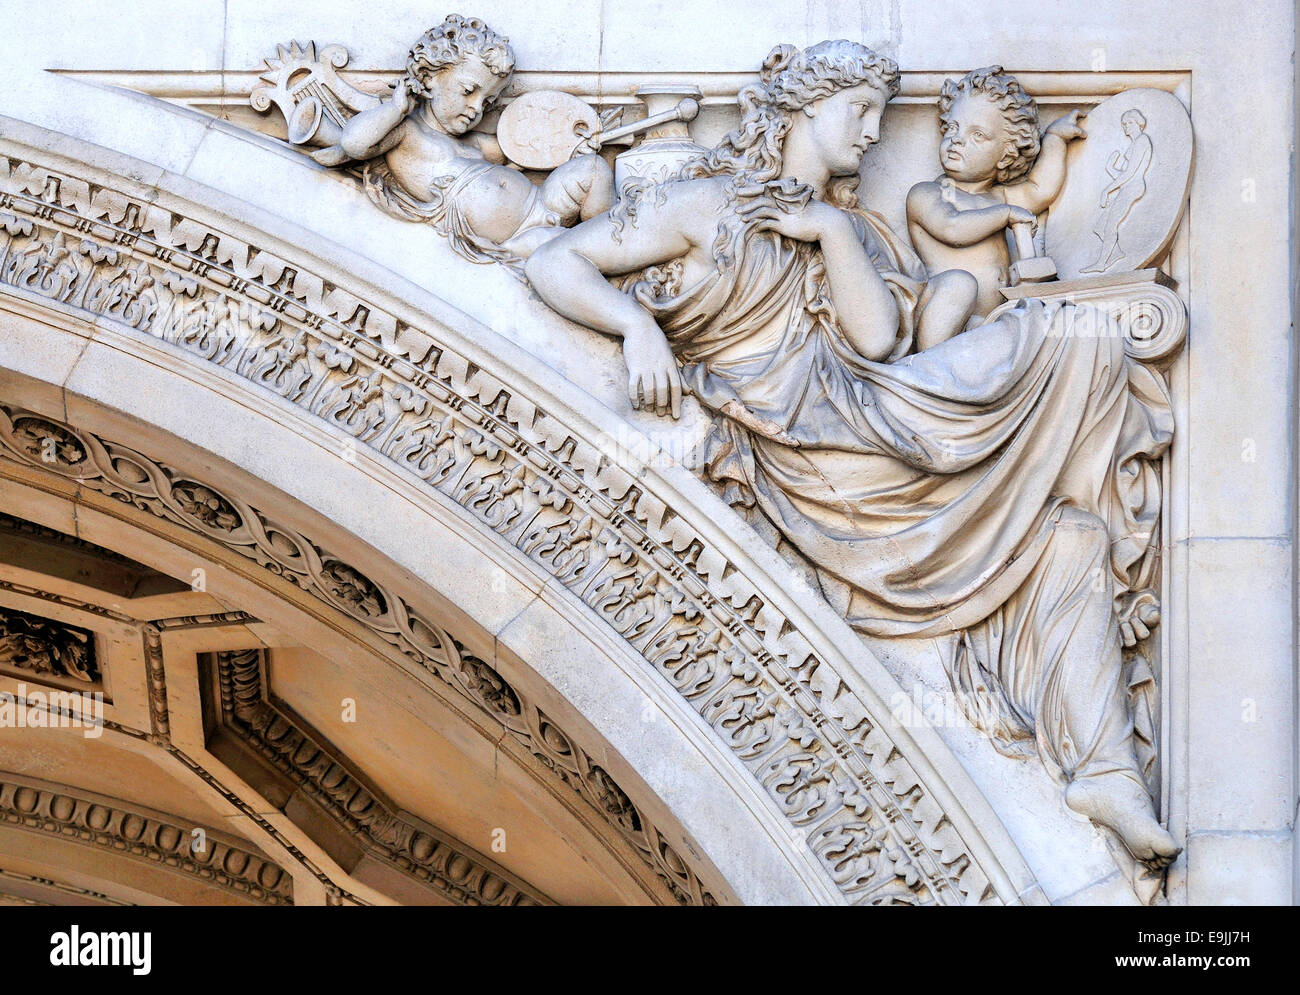 London, England, UK. Burlington House (Royal Academy of Arts) Detail above arch by John Birney Philip - Stock Image